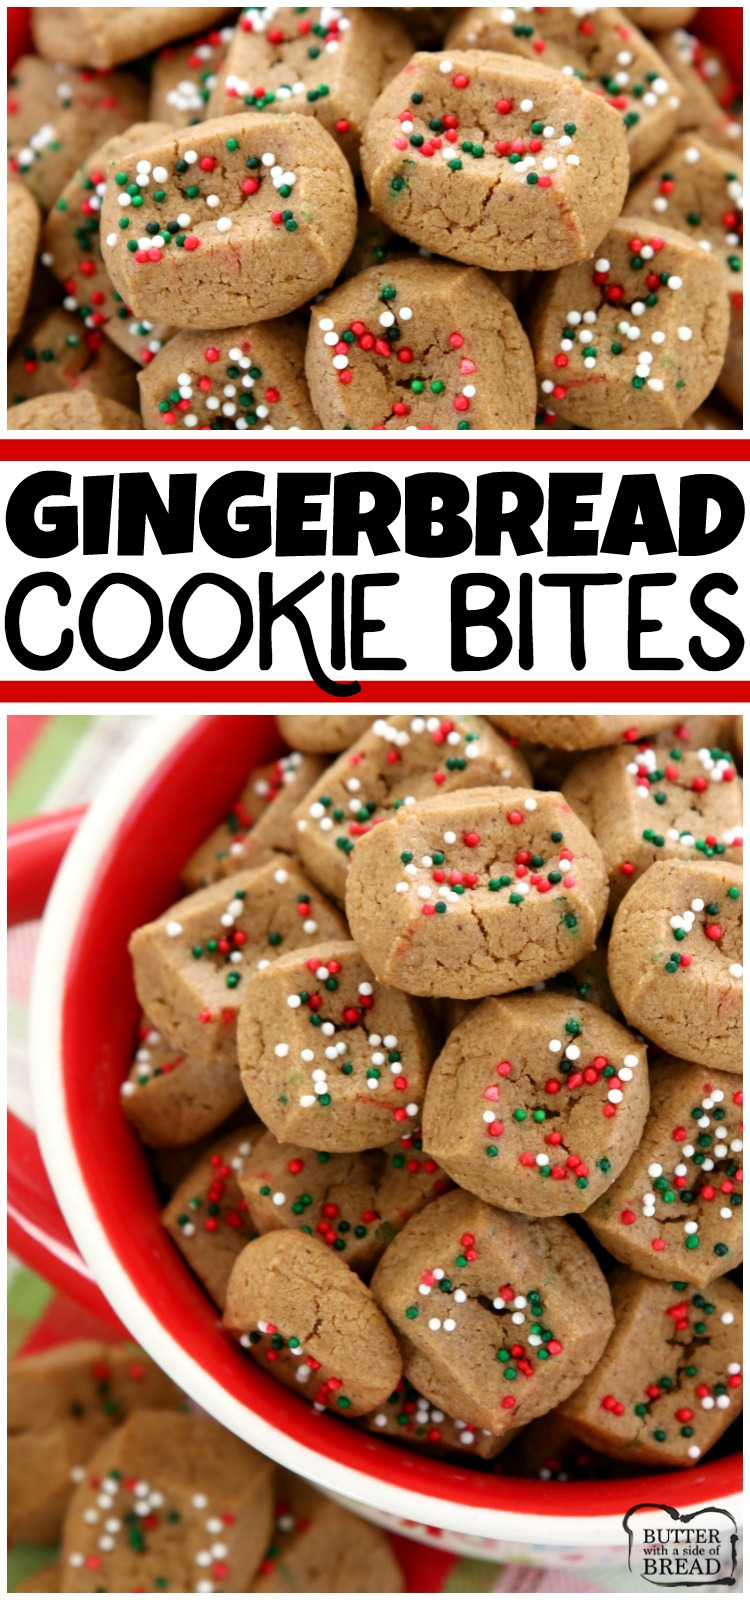 The simplest gingerbread cookie recipe ever! Chewy, bite-sized gingerbread cookies that take a fraction of the time to make! They're perfect for holiday parties and get-togethers! #gingerbread #cookies #christmas #baking #dessert #cookie #holidays #recipe from BUTTER WITH A SIDE OF BREAD